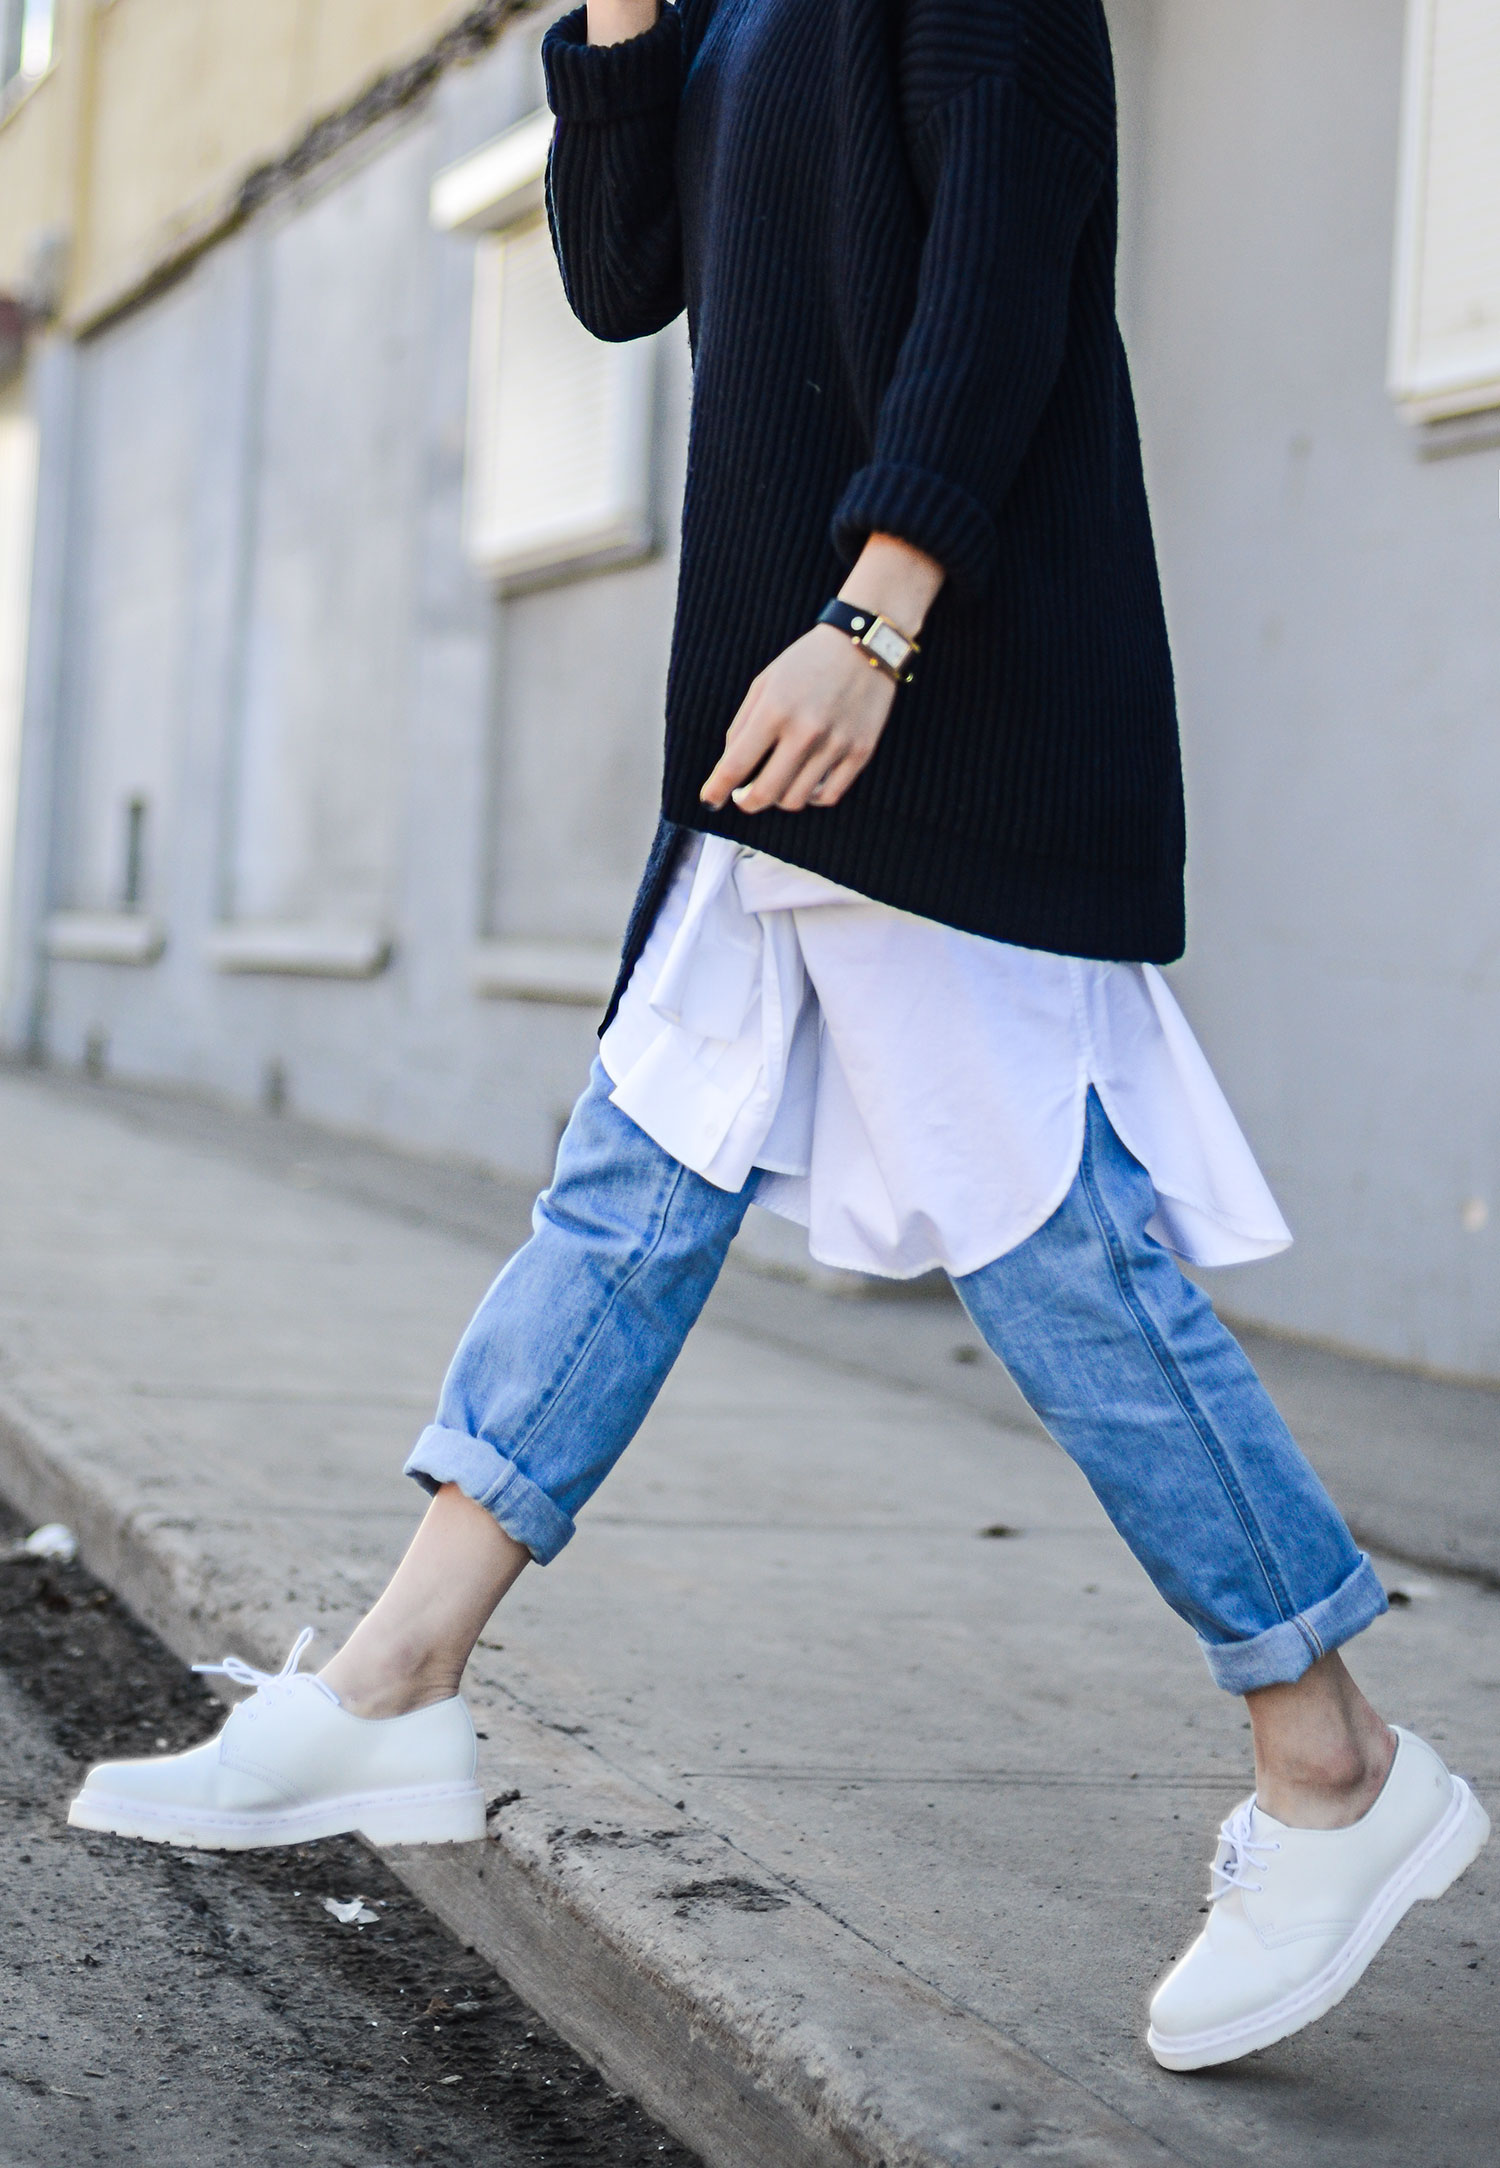 The Long Over Long Trend: Alyssa Lau is wearing a vintage knitted jumper and a white Vera Wang skirt over a pair of New Classics Studios light wash denim jeans